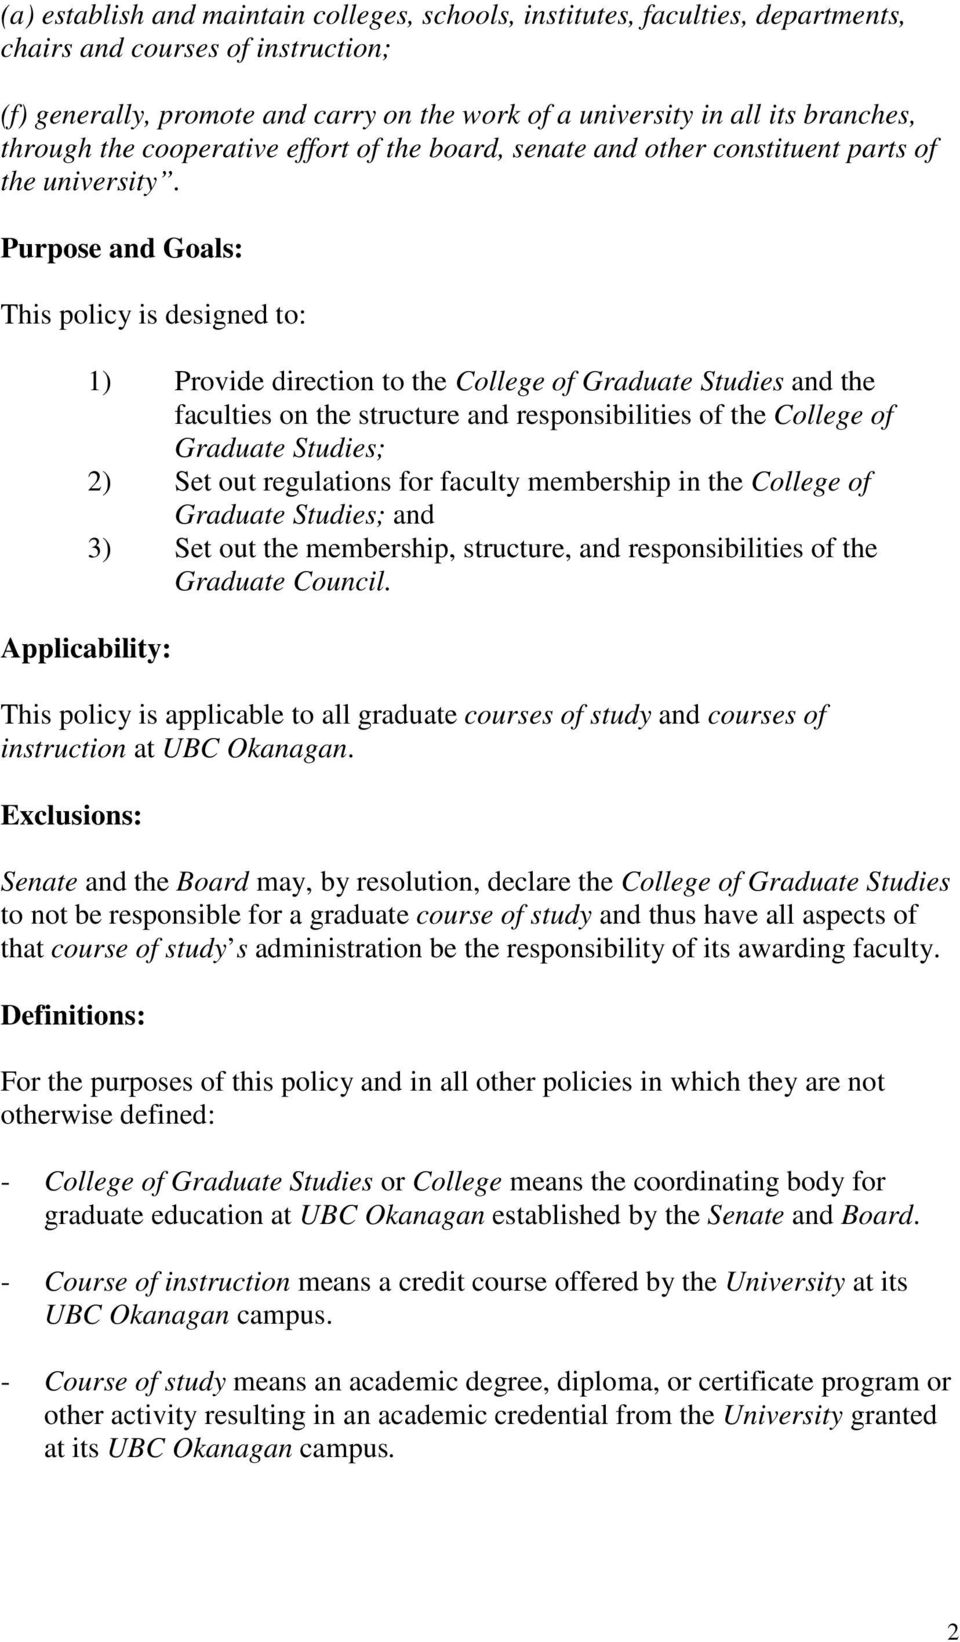 Purpose and Goals: This policy is designed to: 1) Provide direction to the College of Graduate Studies and the faculties on the structure and responsibilities of the College of Graduate Studies; 2)